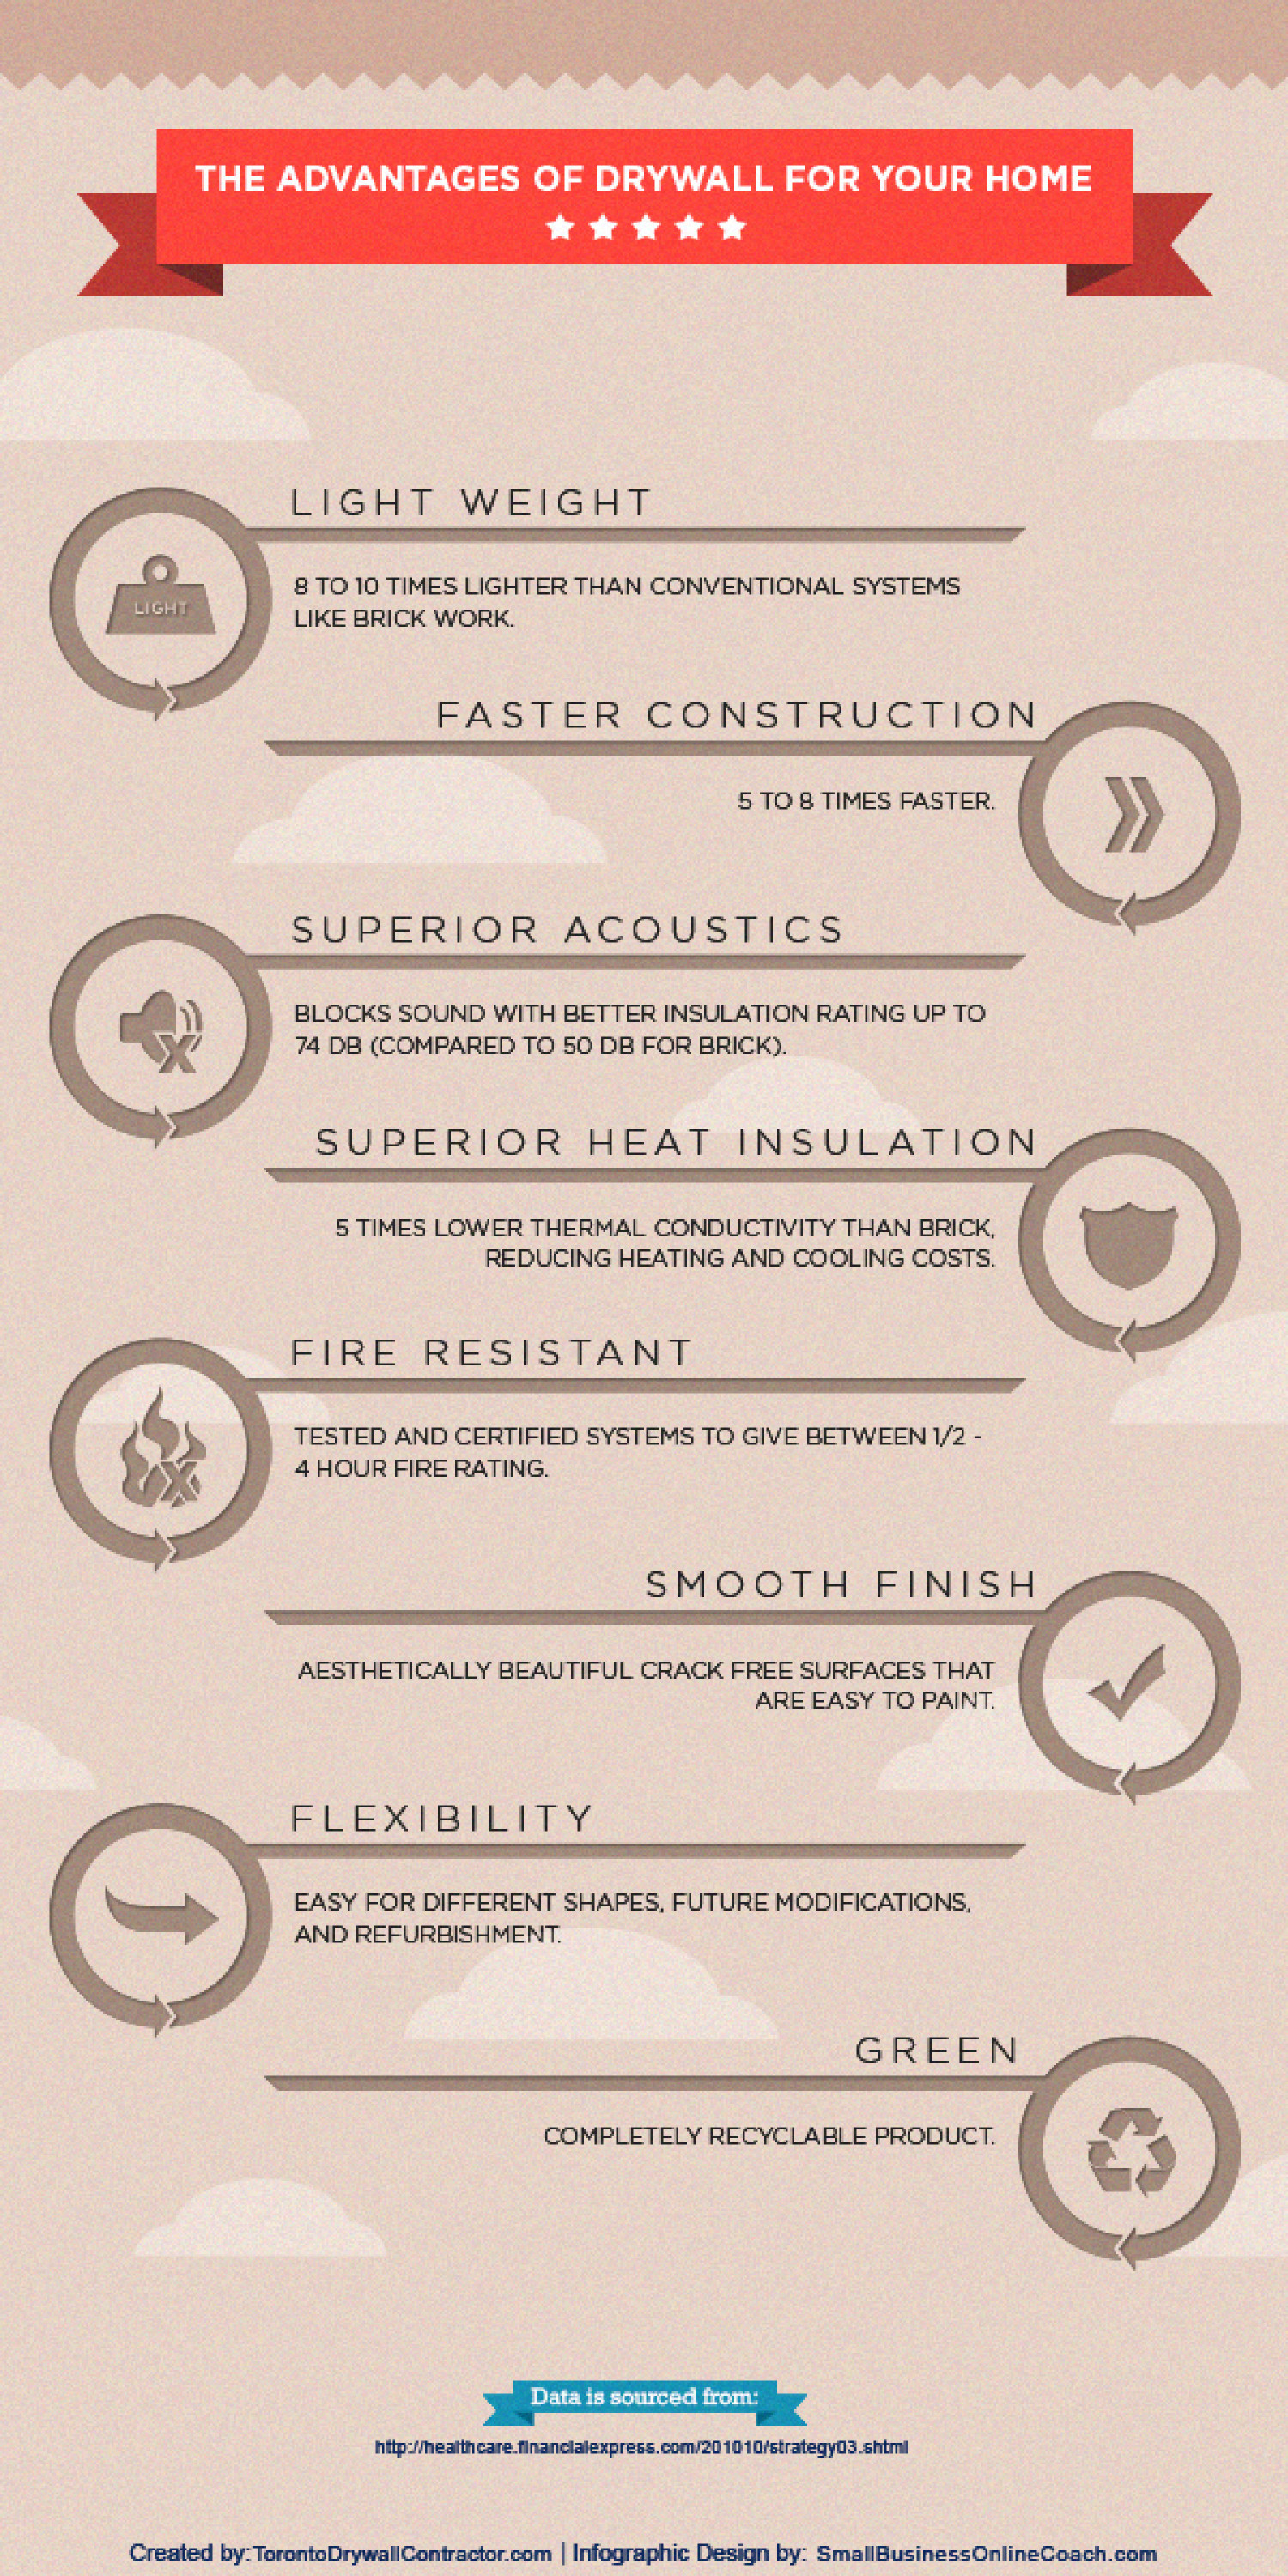 The Advantages of Drywall for Your Home Infographic